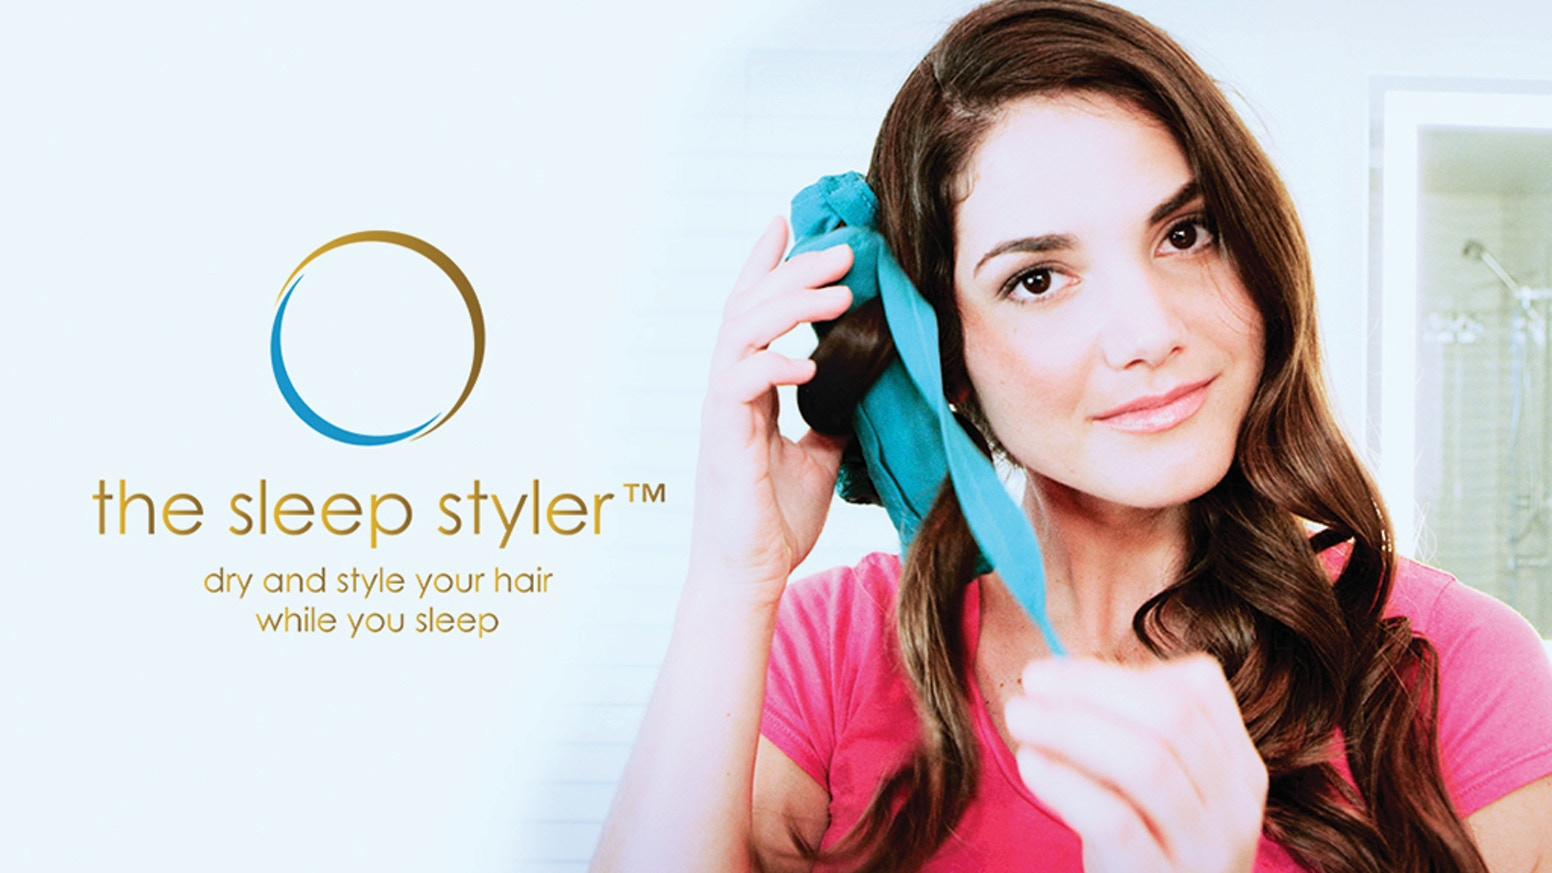 The Hair Curler Re-Invented. Dry and style your hair while you sleep, curly or straight!